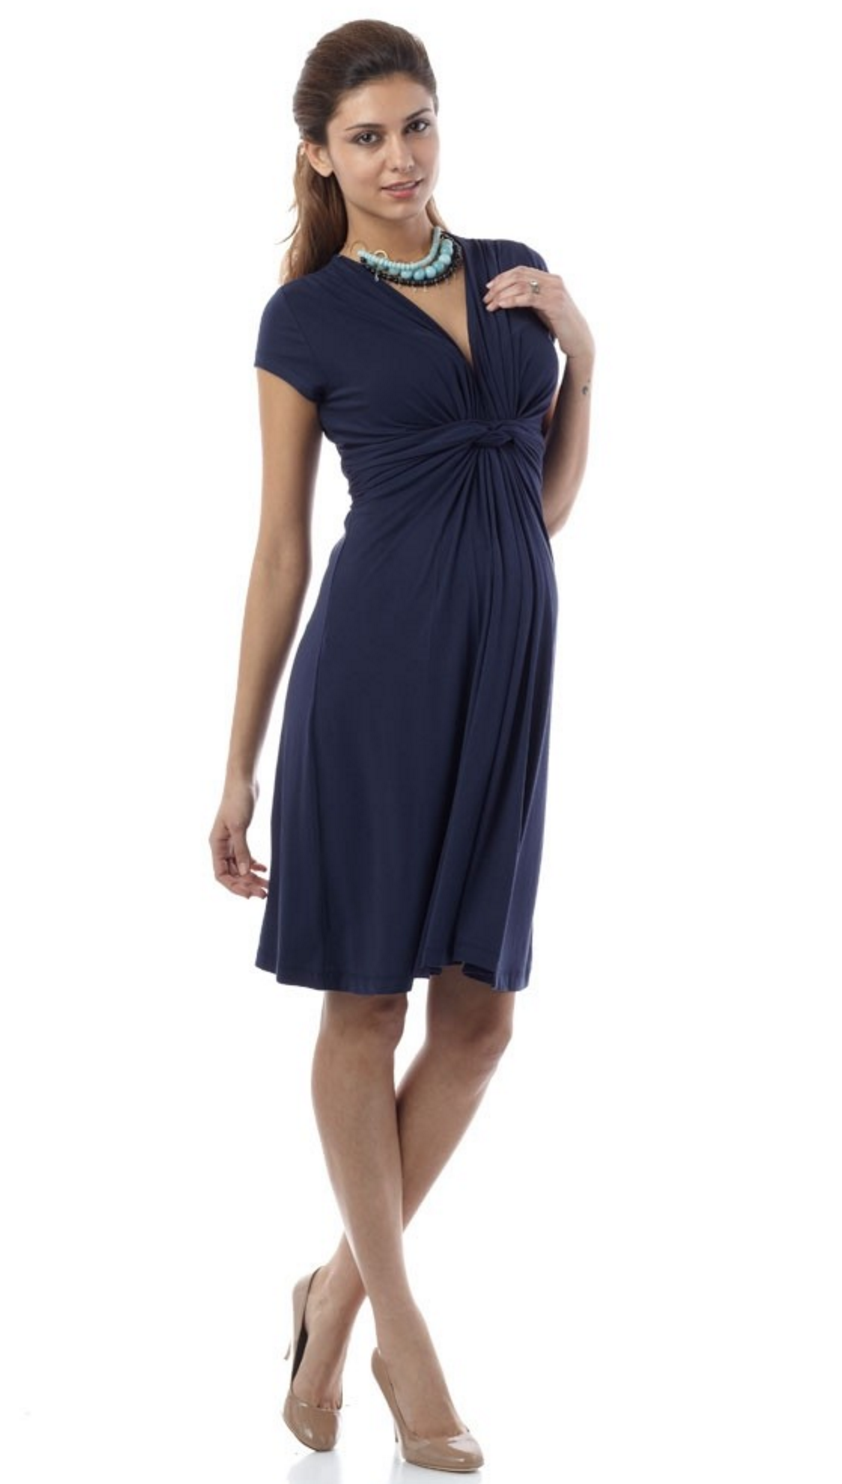 Jolene Front Knot Maternity Dress [it] Abito Premaman con nodo davanti – Jolene